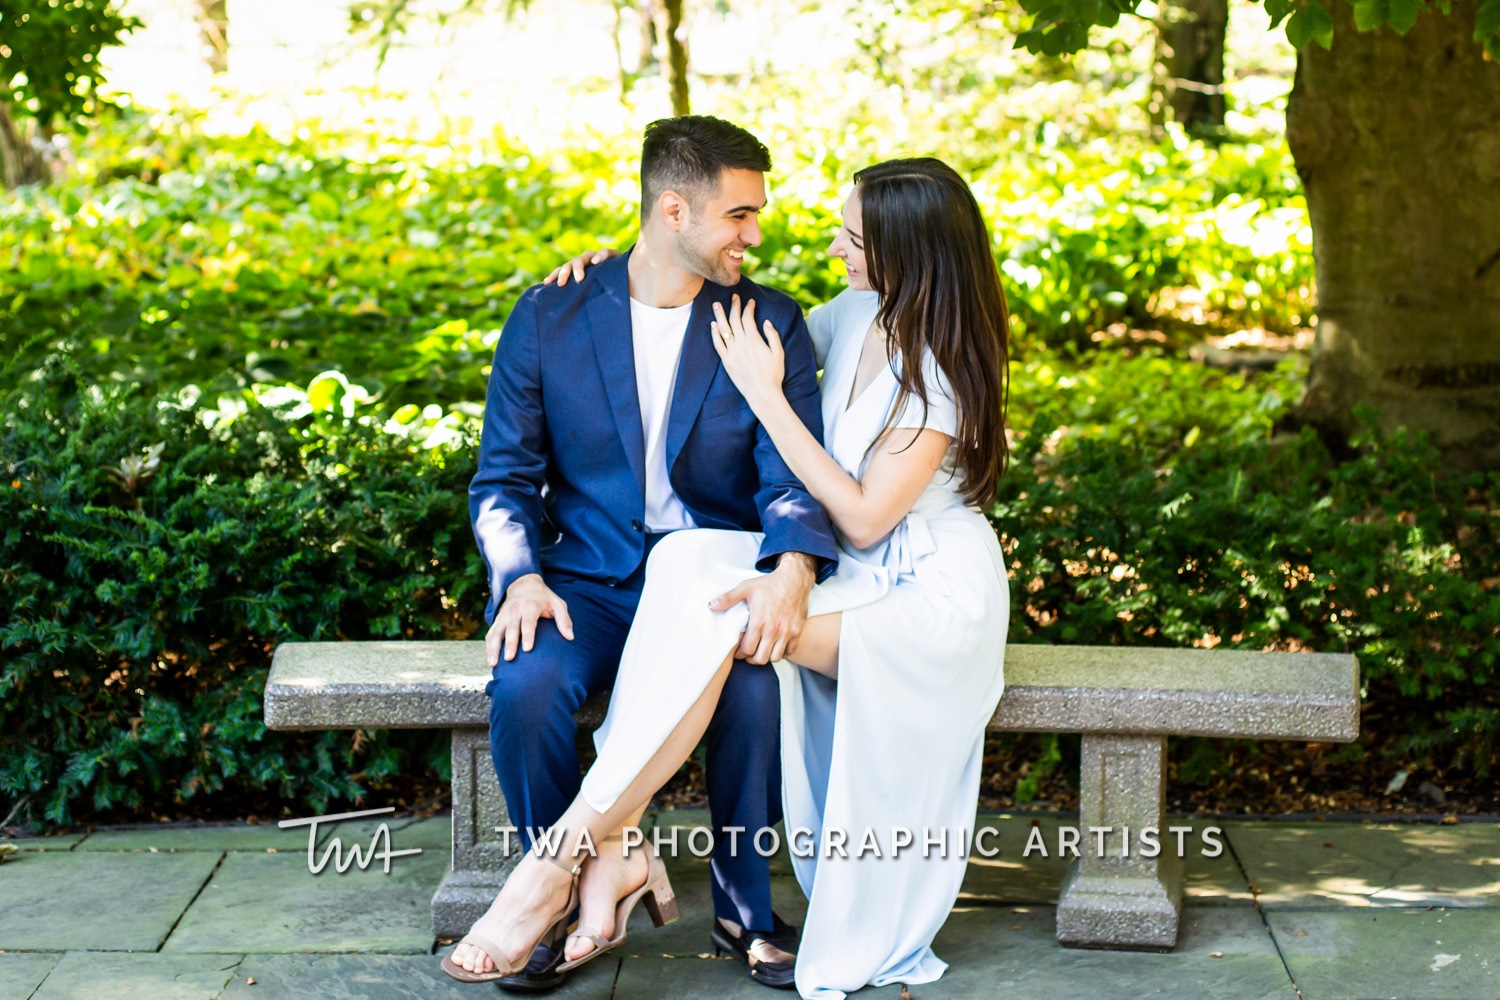 Chicago-Wedding-Photographer-TWA-Photographic-Artists-Cantigny-Park_Geraci_Vlahos_MJ-048